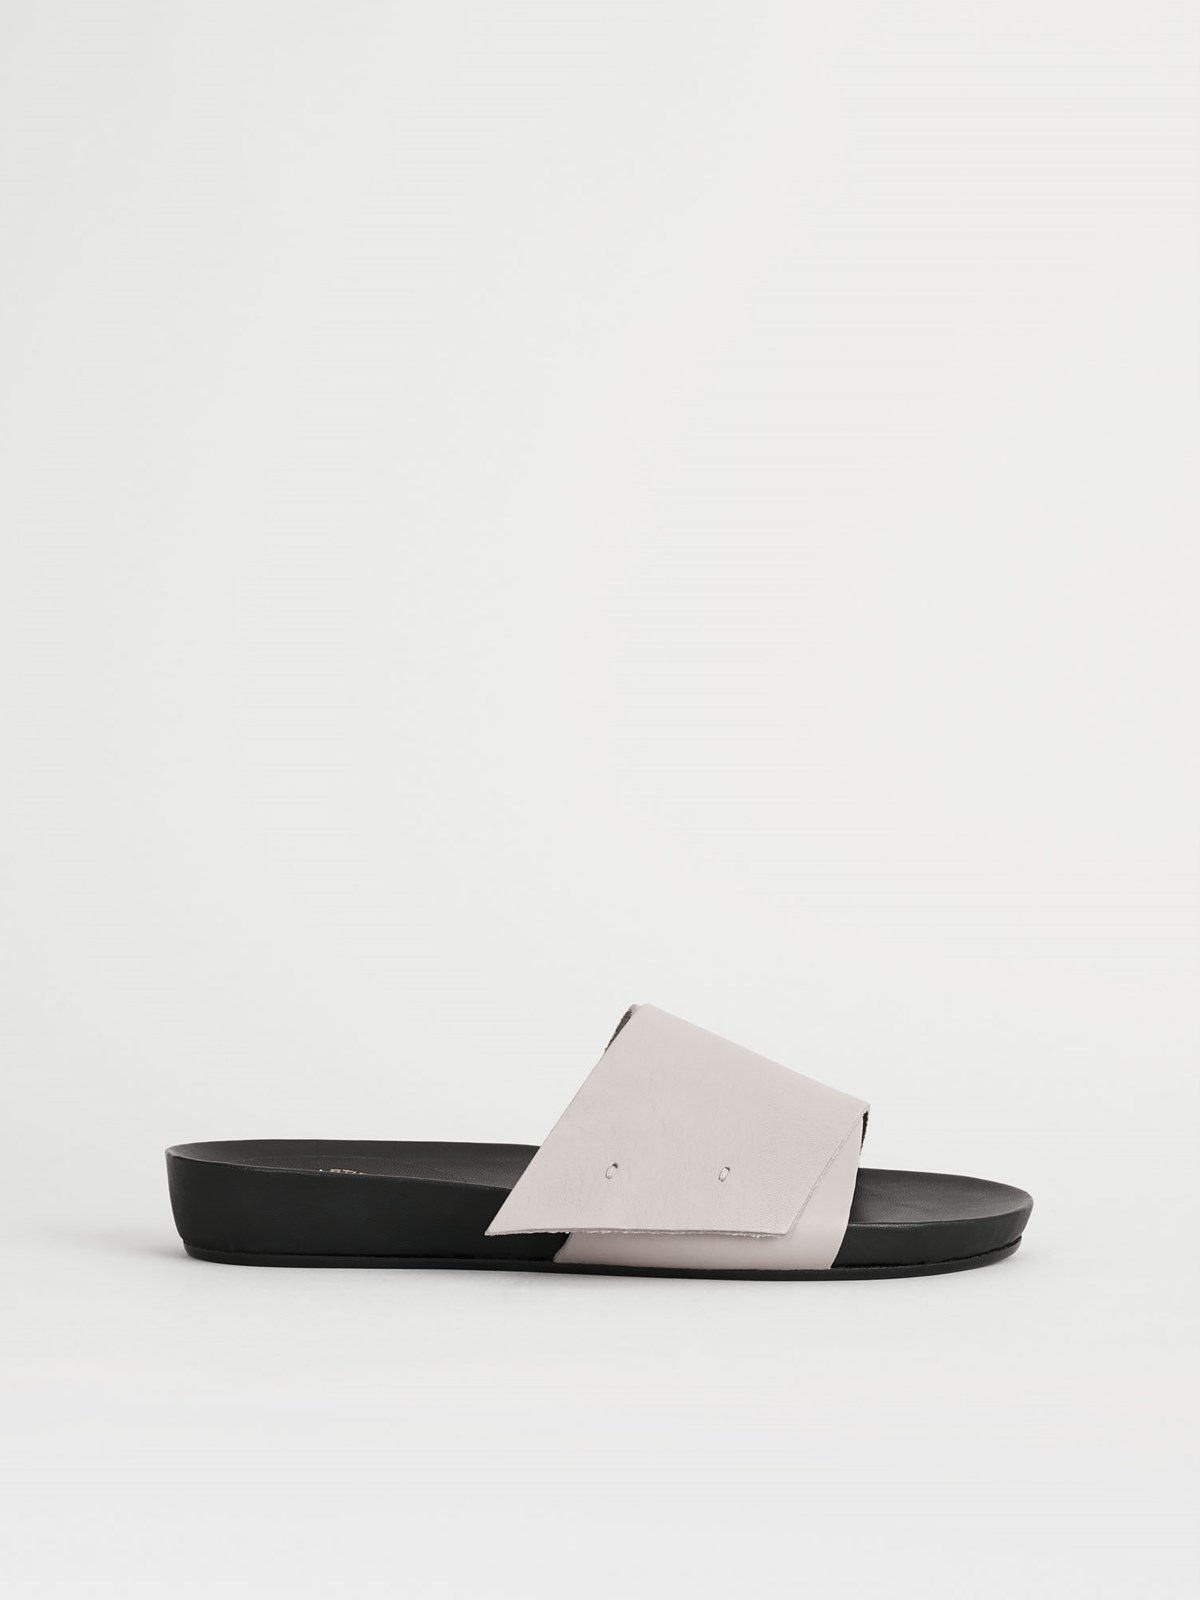 Manfio Greyish Everyday sandals